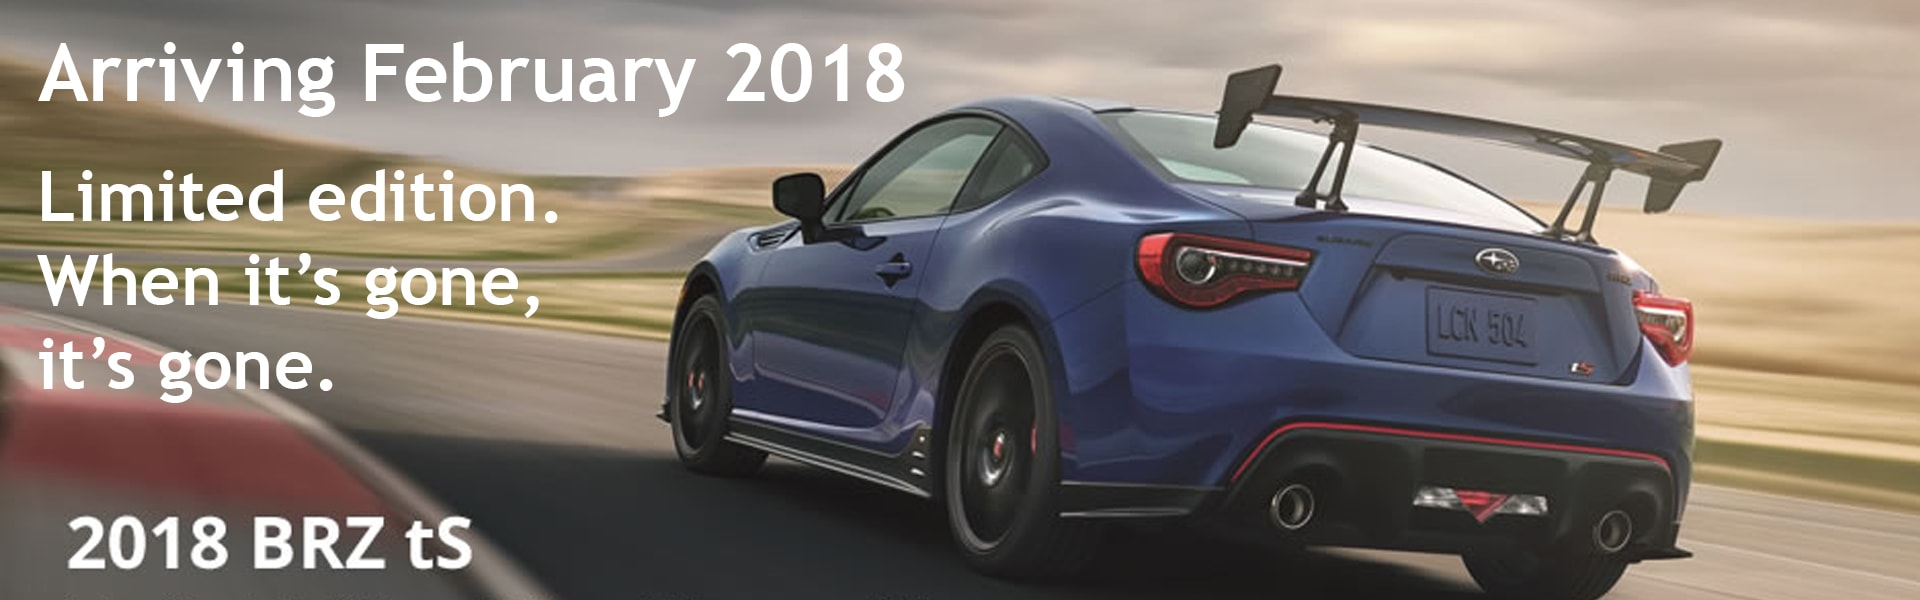 2018 BRX tS Limited Edition